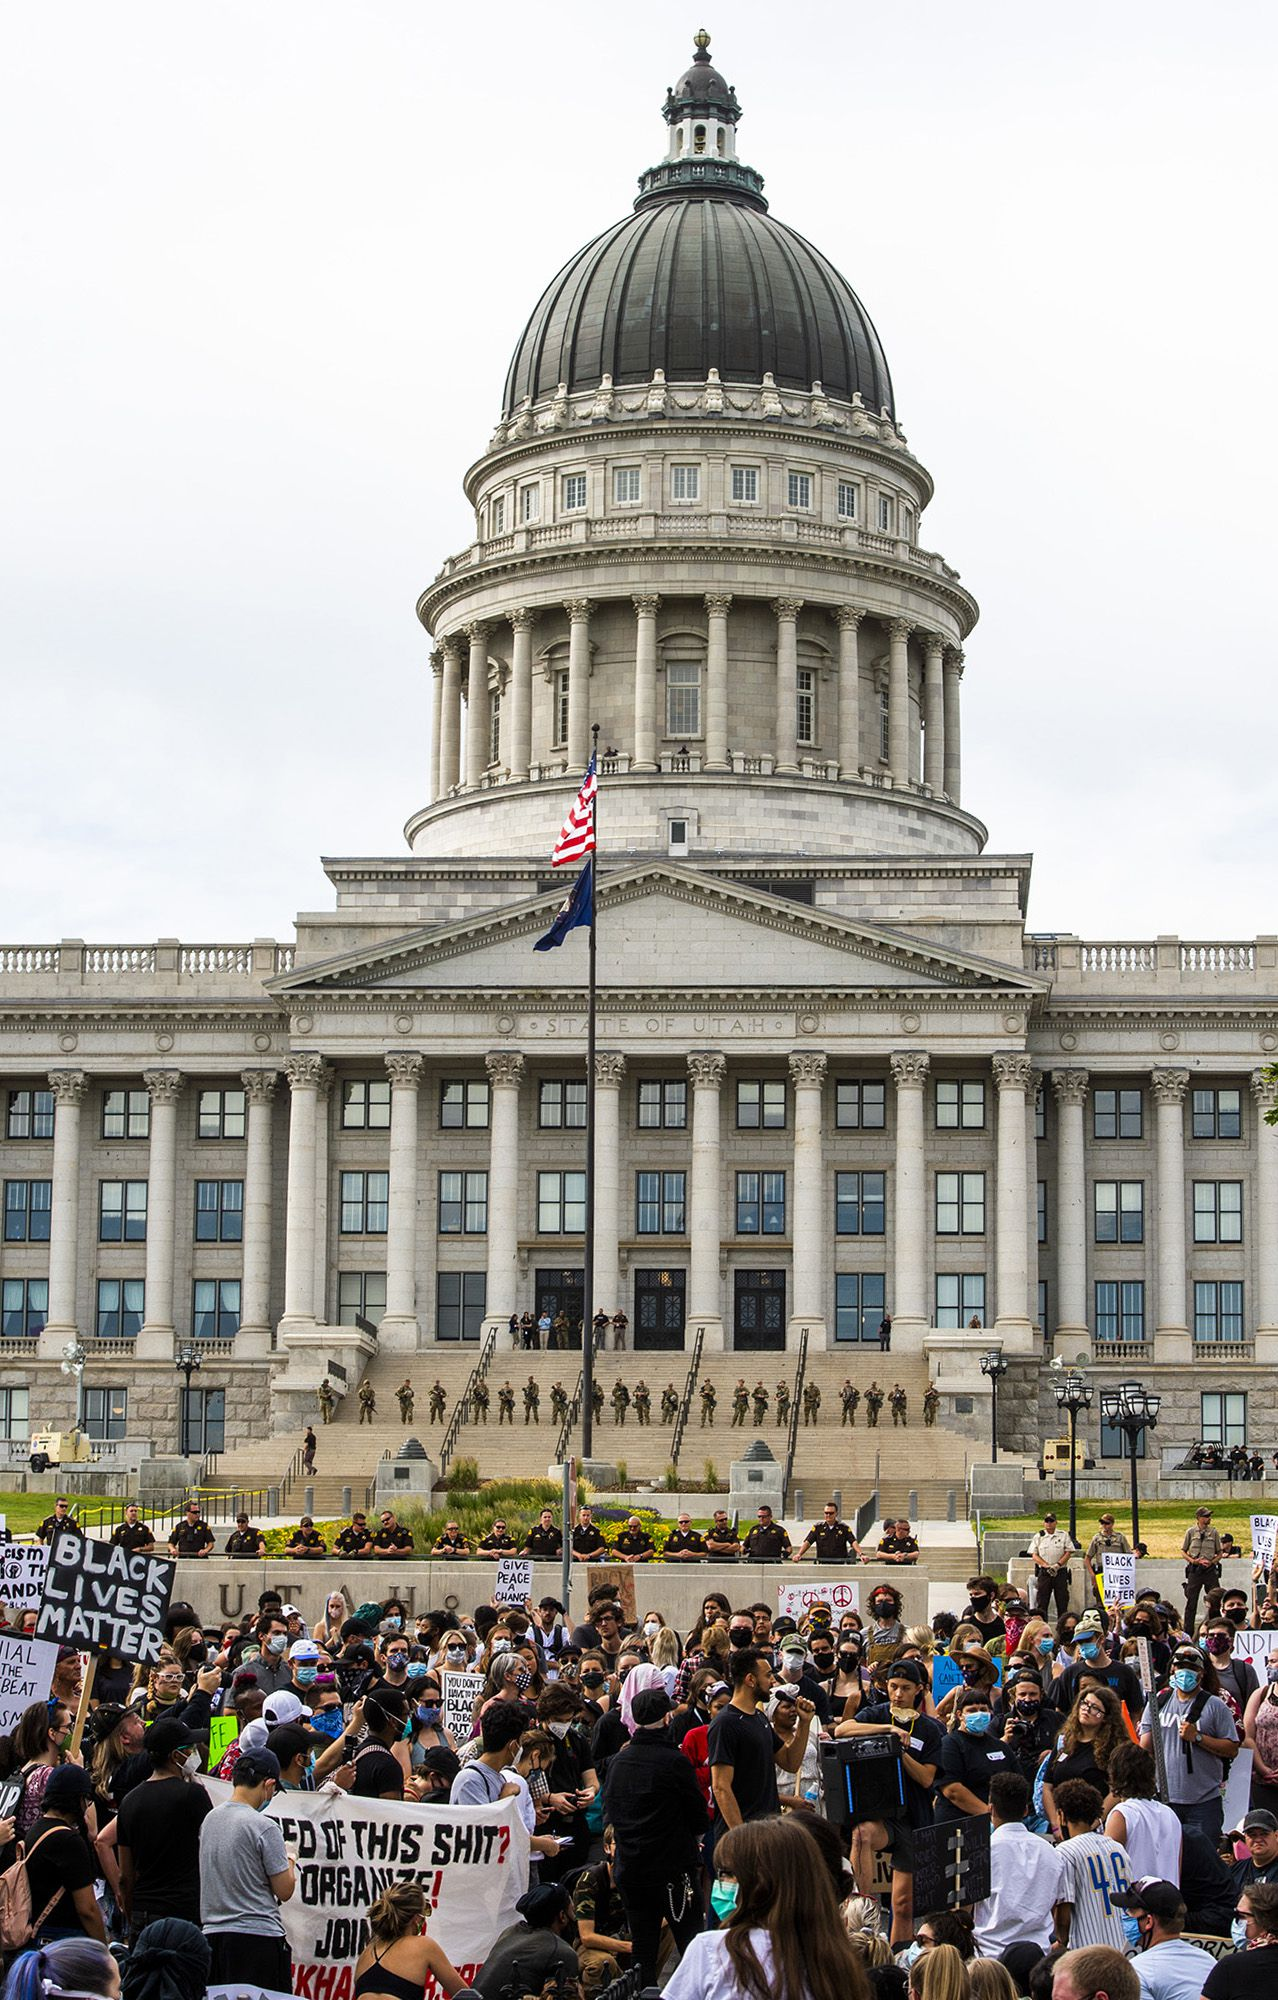 (Rick Egan  |  The Salt Lake Tribune) Police observe the protest from across the street on the grounds of the Sate Capitol, during a George Floyd demonstration in Salt Lake City on Thursday, June 4, 2020.